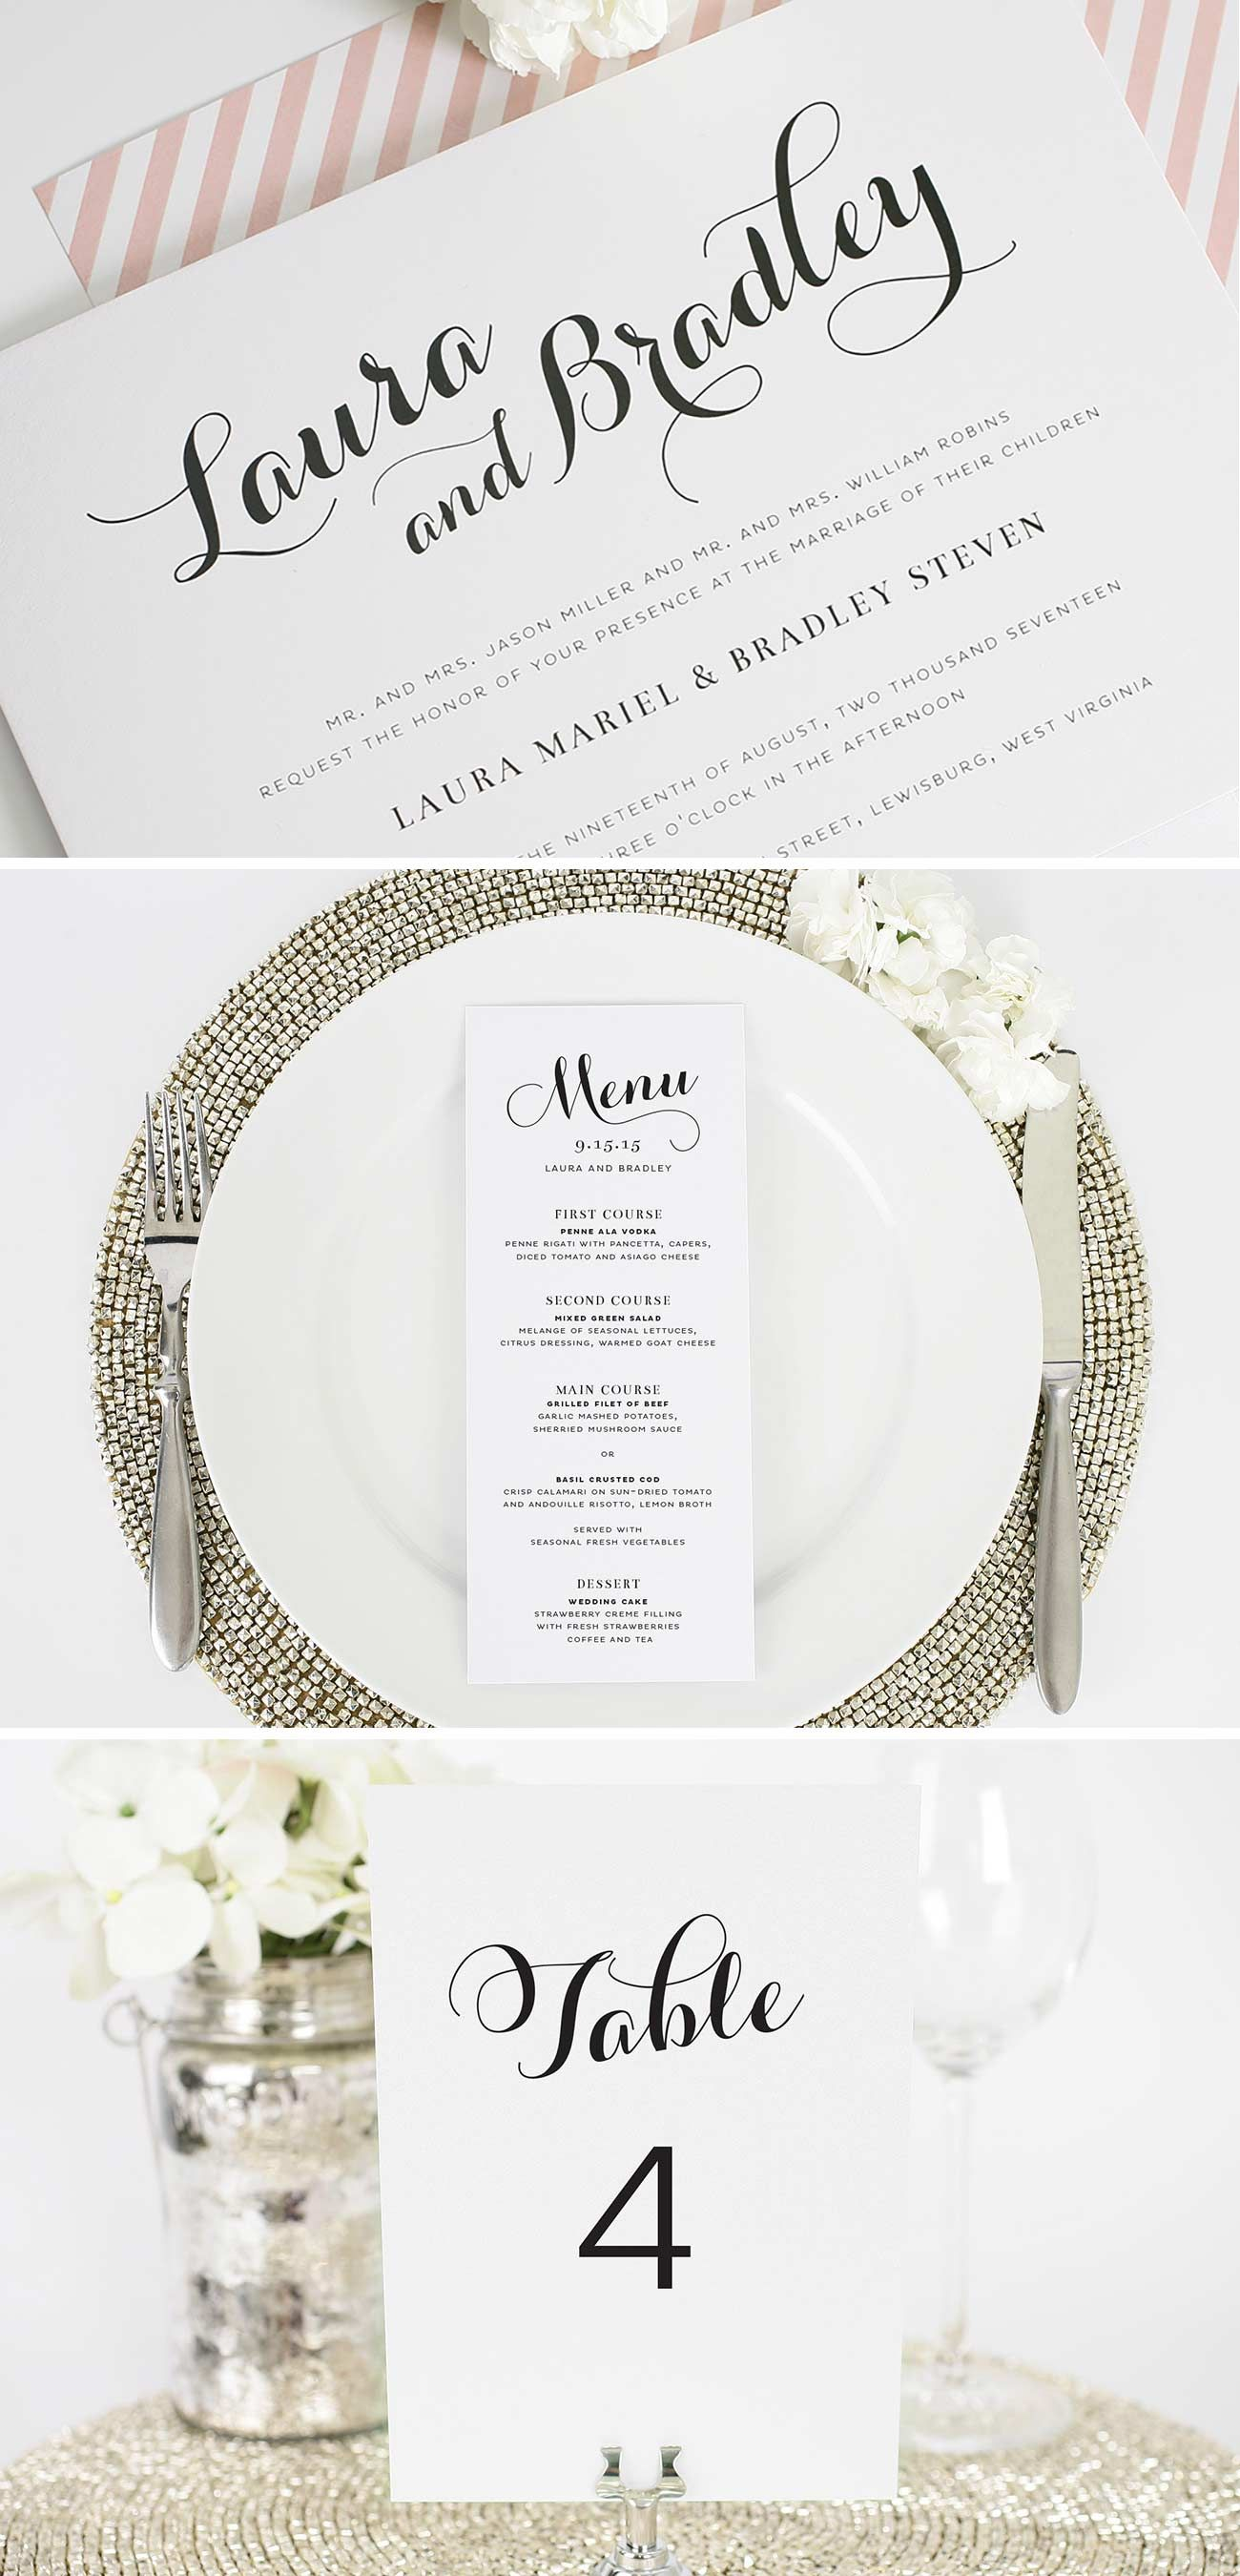 Romantic Script Wedding Invitations | Decor & Details For Weddings ...